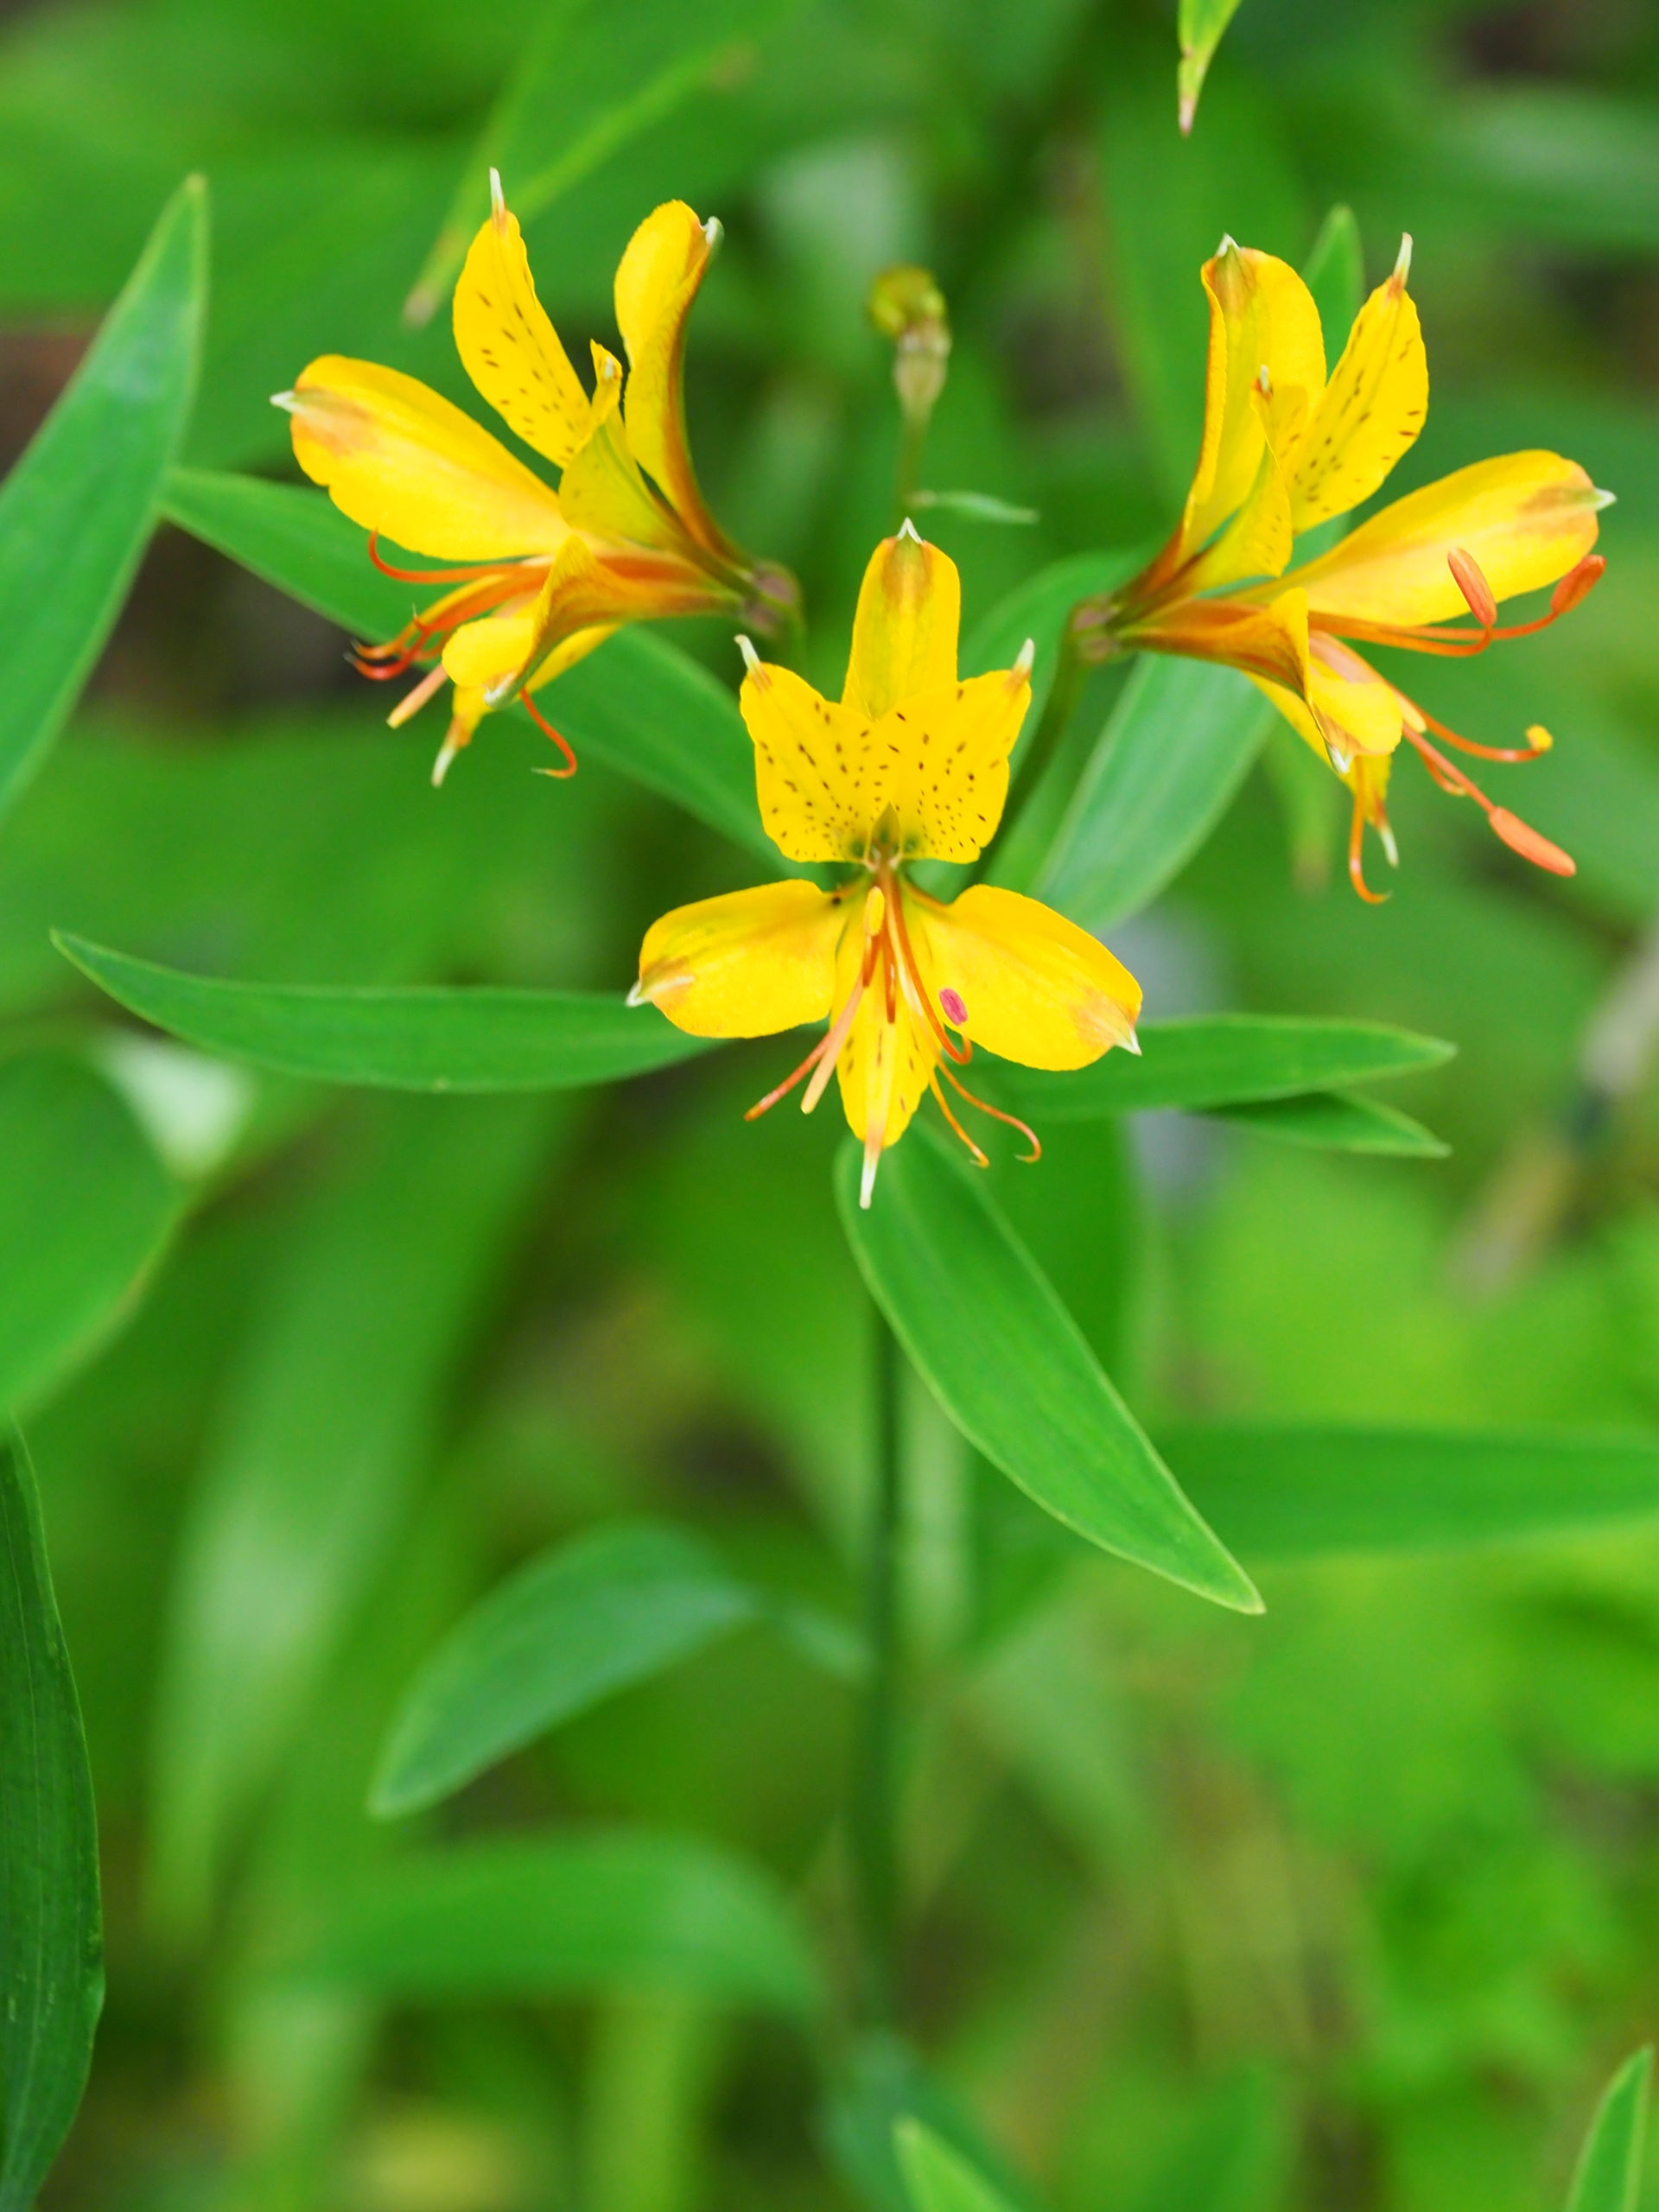 Once thought of as only a cut flower, Alstromeria can make a nice late-summer display with their long stems and small lily-like flowers. Make sure you use varieties hardy in our zone.